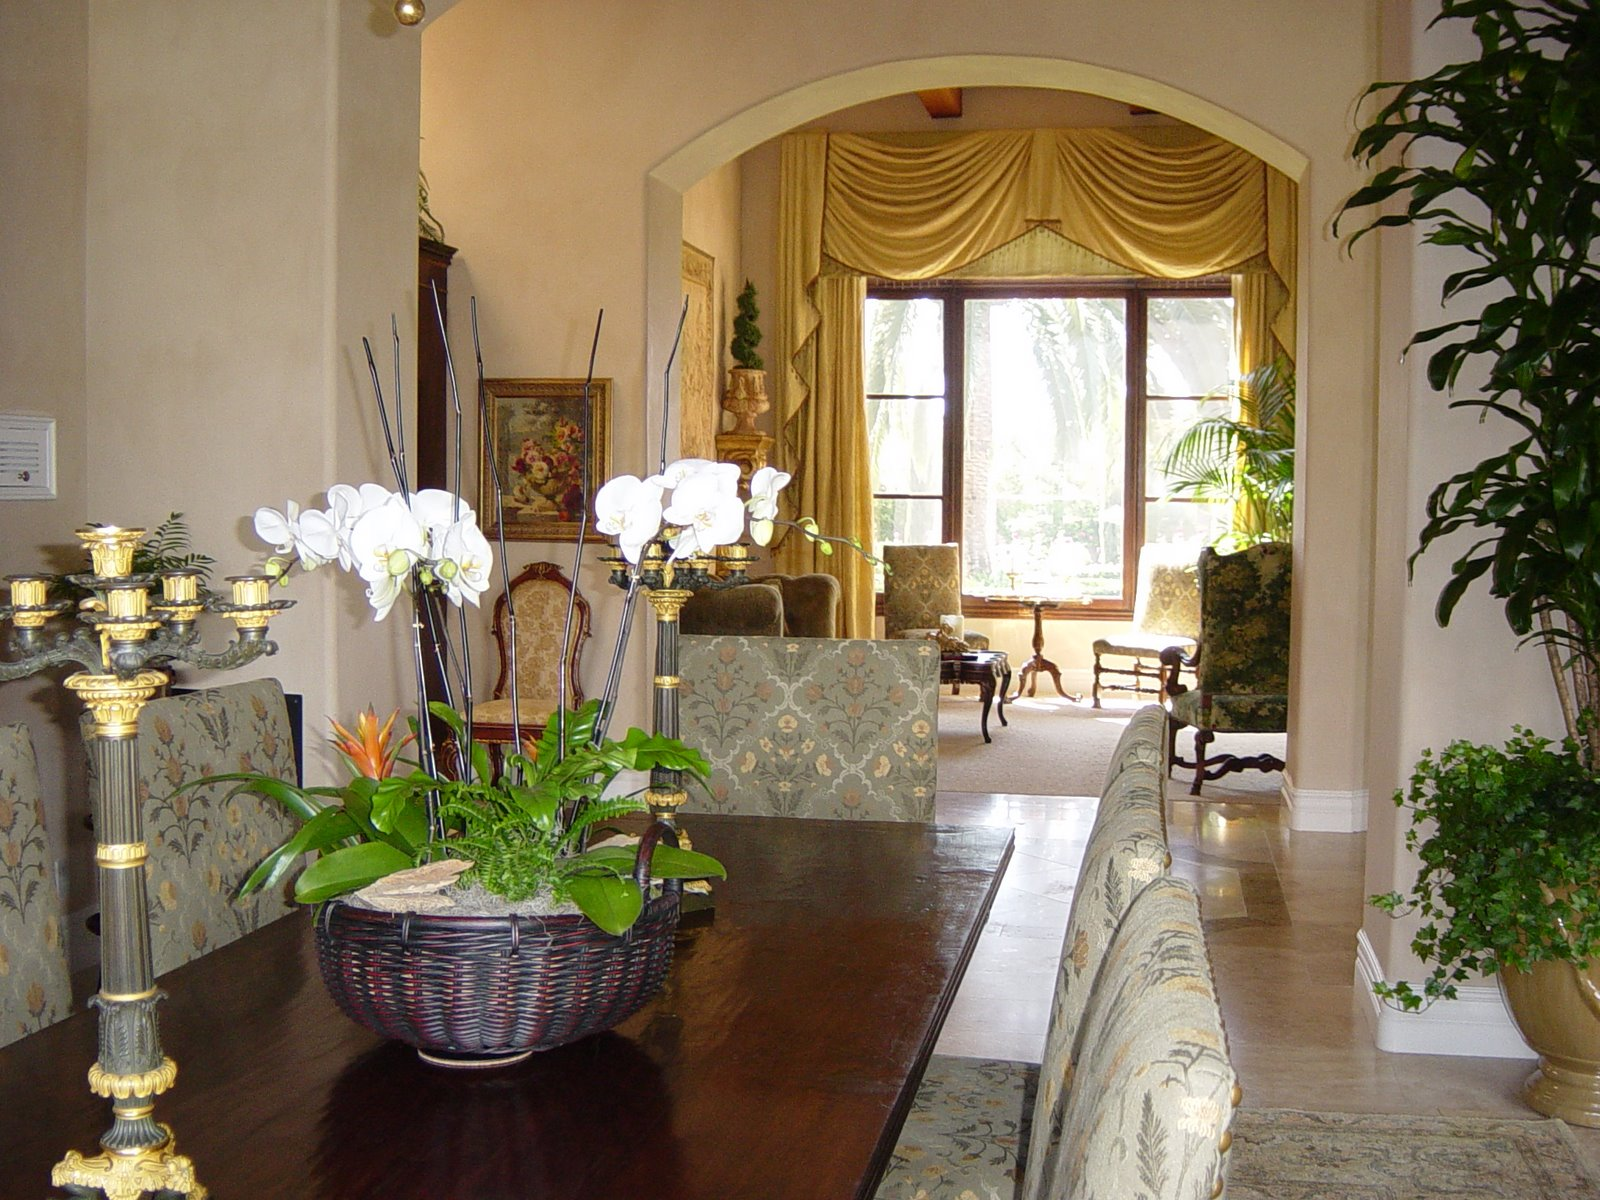 Table orchid estate image.JPG